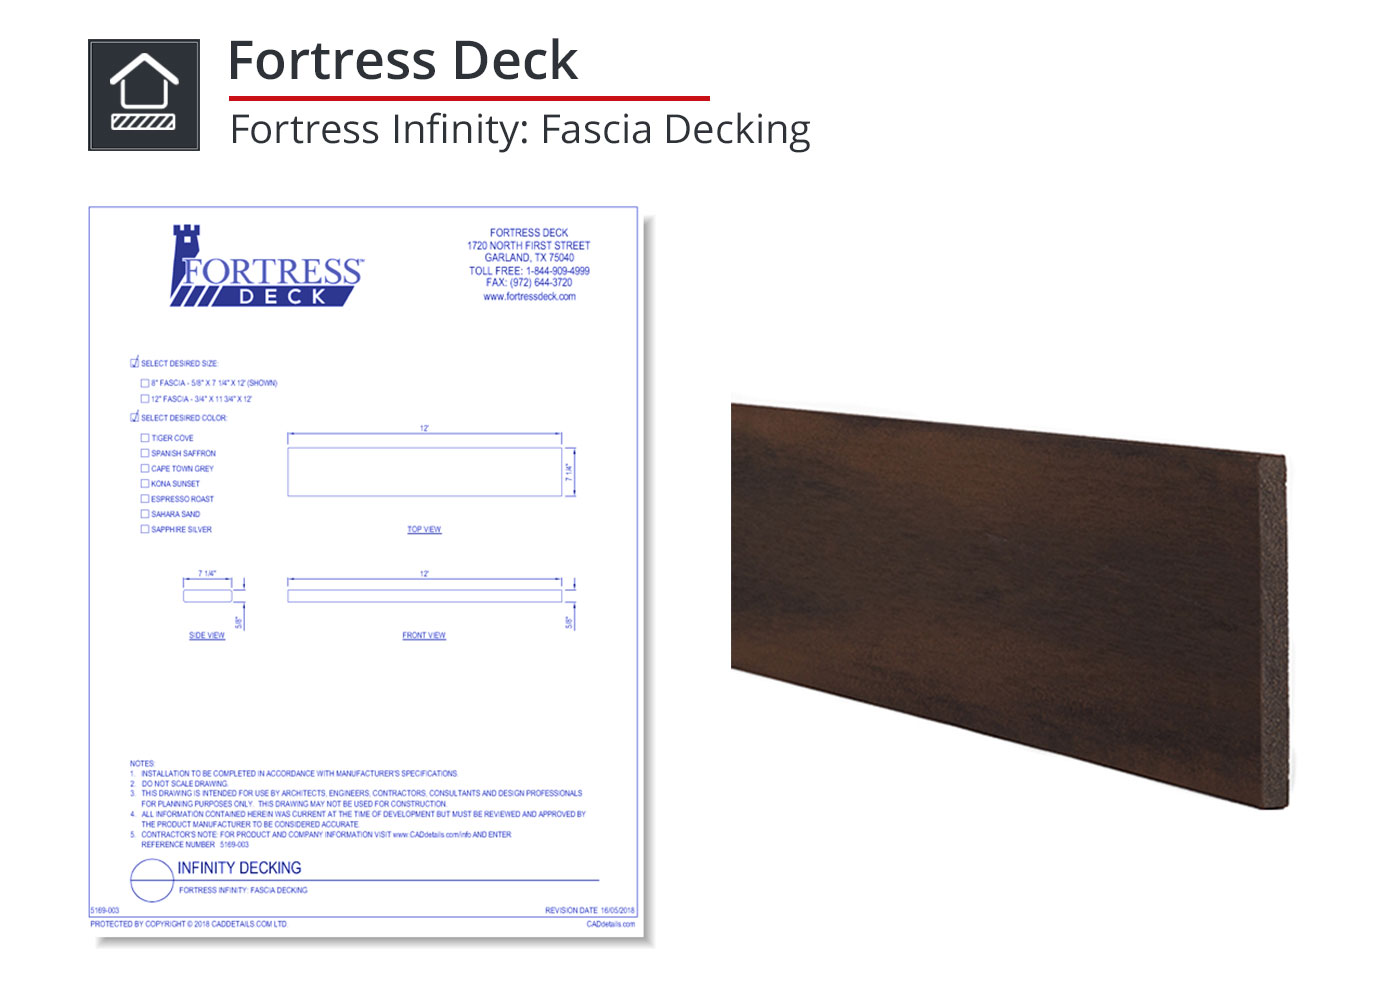 5169-003 Fortress Infinity: Fascia Decking